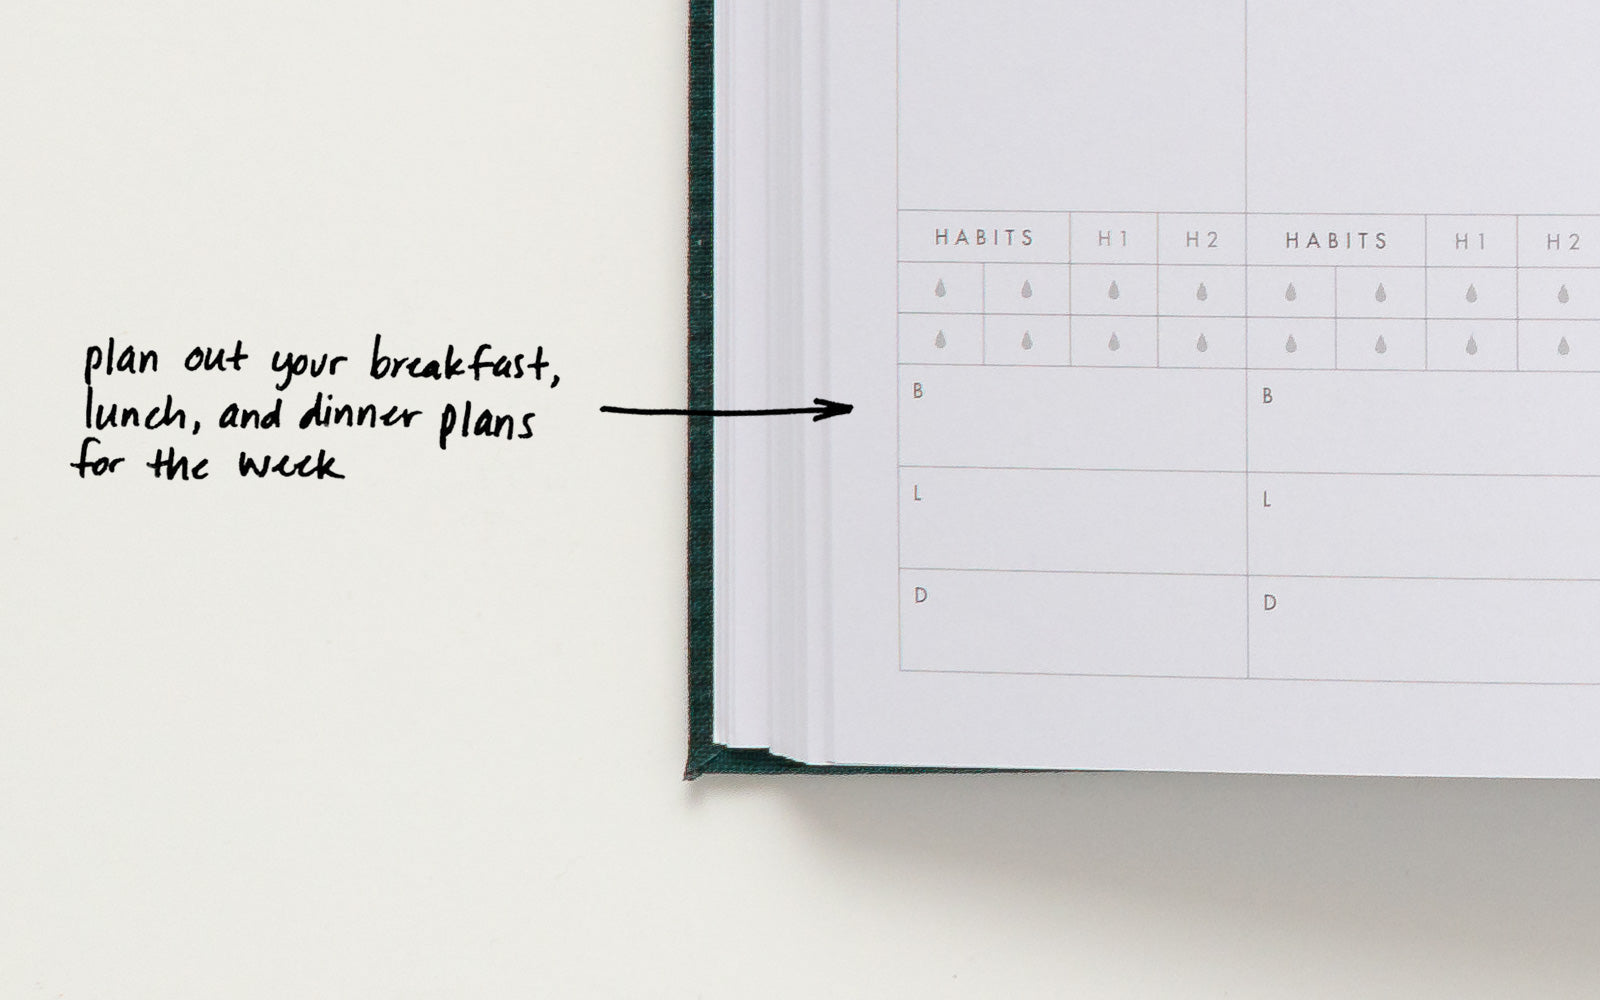 Plan our your breakfast, lunch, and dinner plans for the week